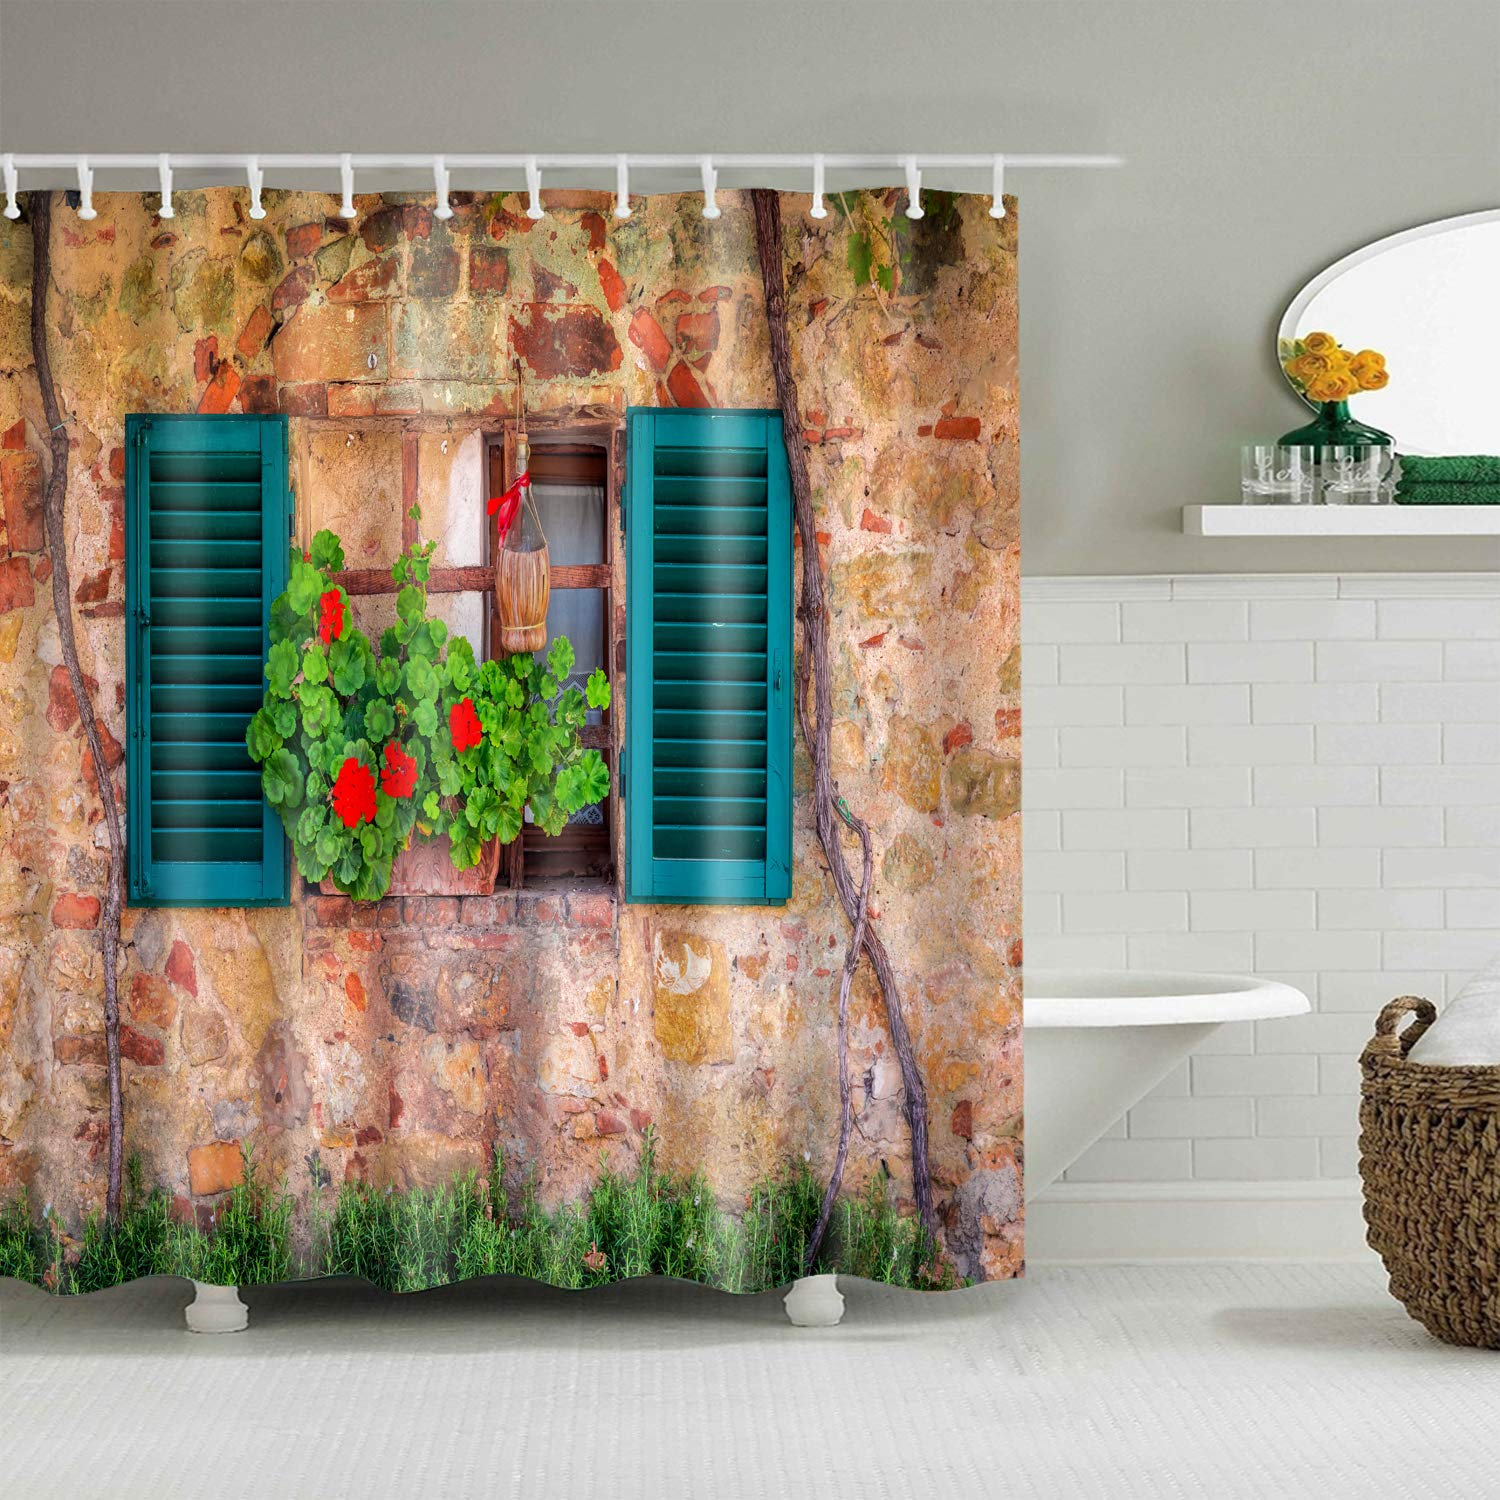 Hibbent Shutters Decor Shower Curtain Weathered Old Window With Flowers And Grass On Brown Farmhouse Rural